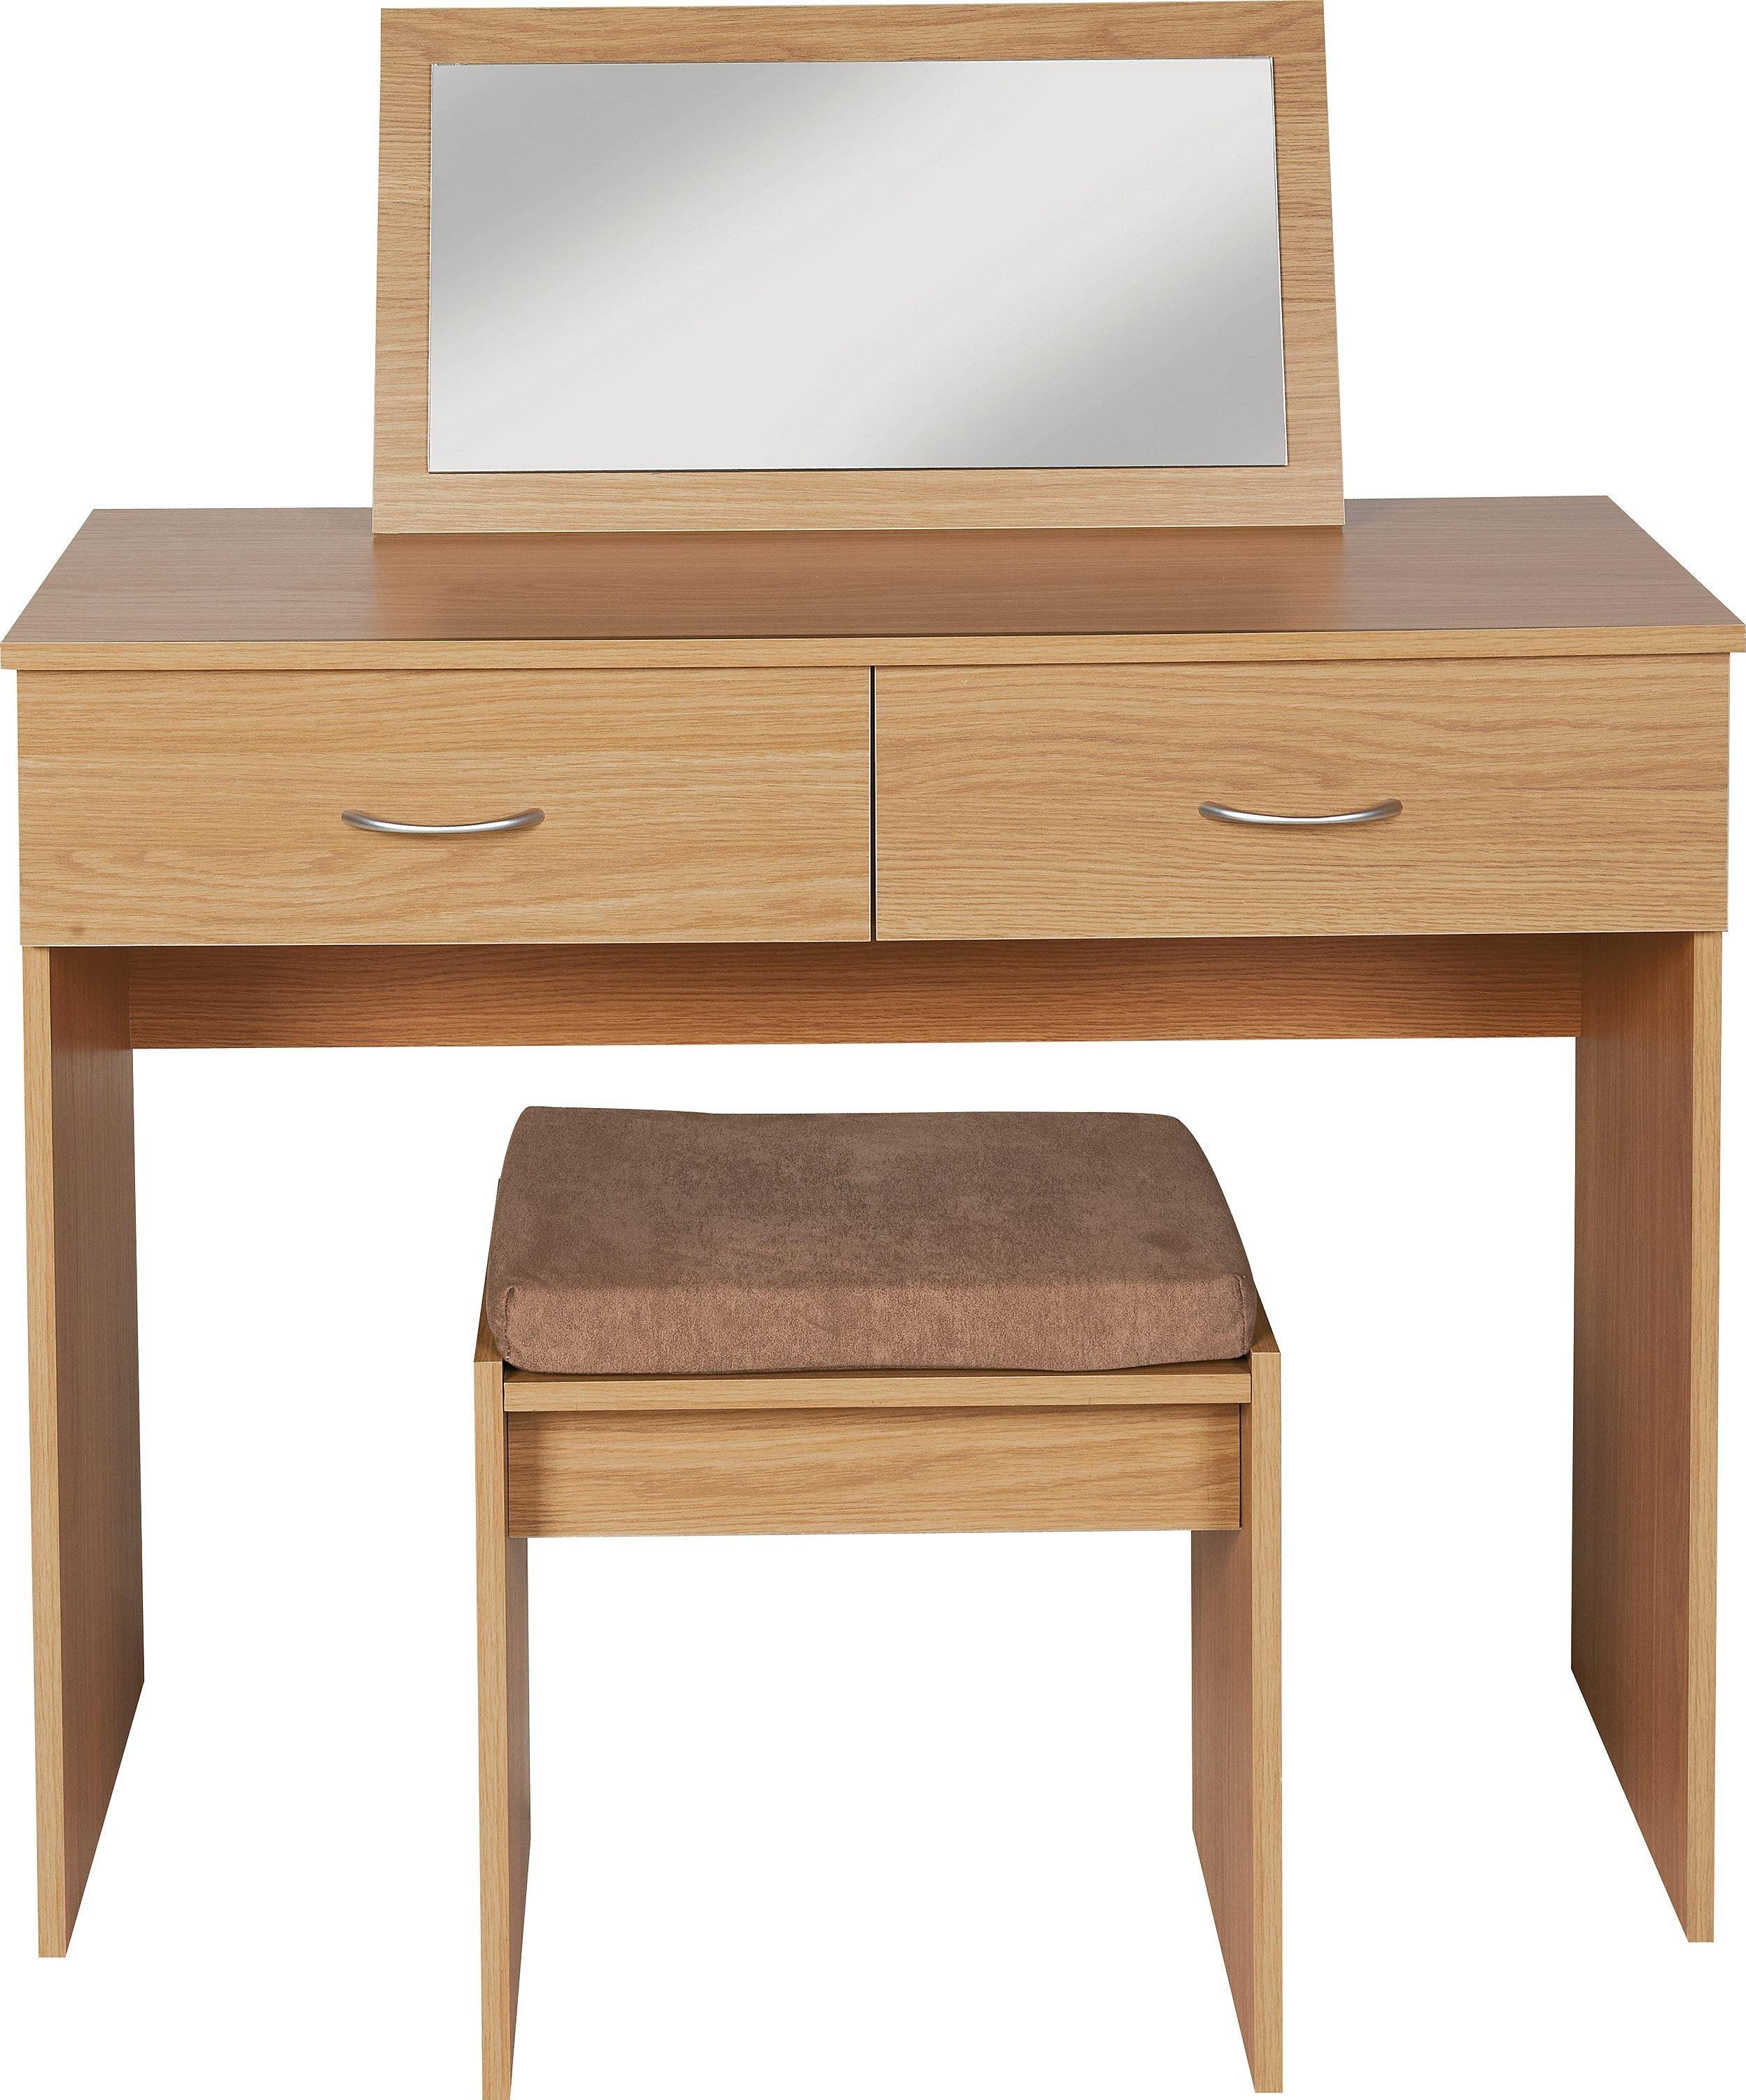 Image of Collection Cheval Dressing Table, Stool & Mirror - Oak Eff